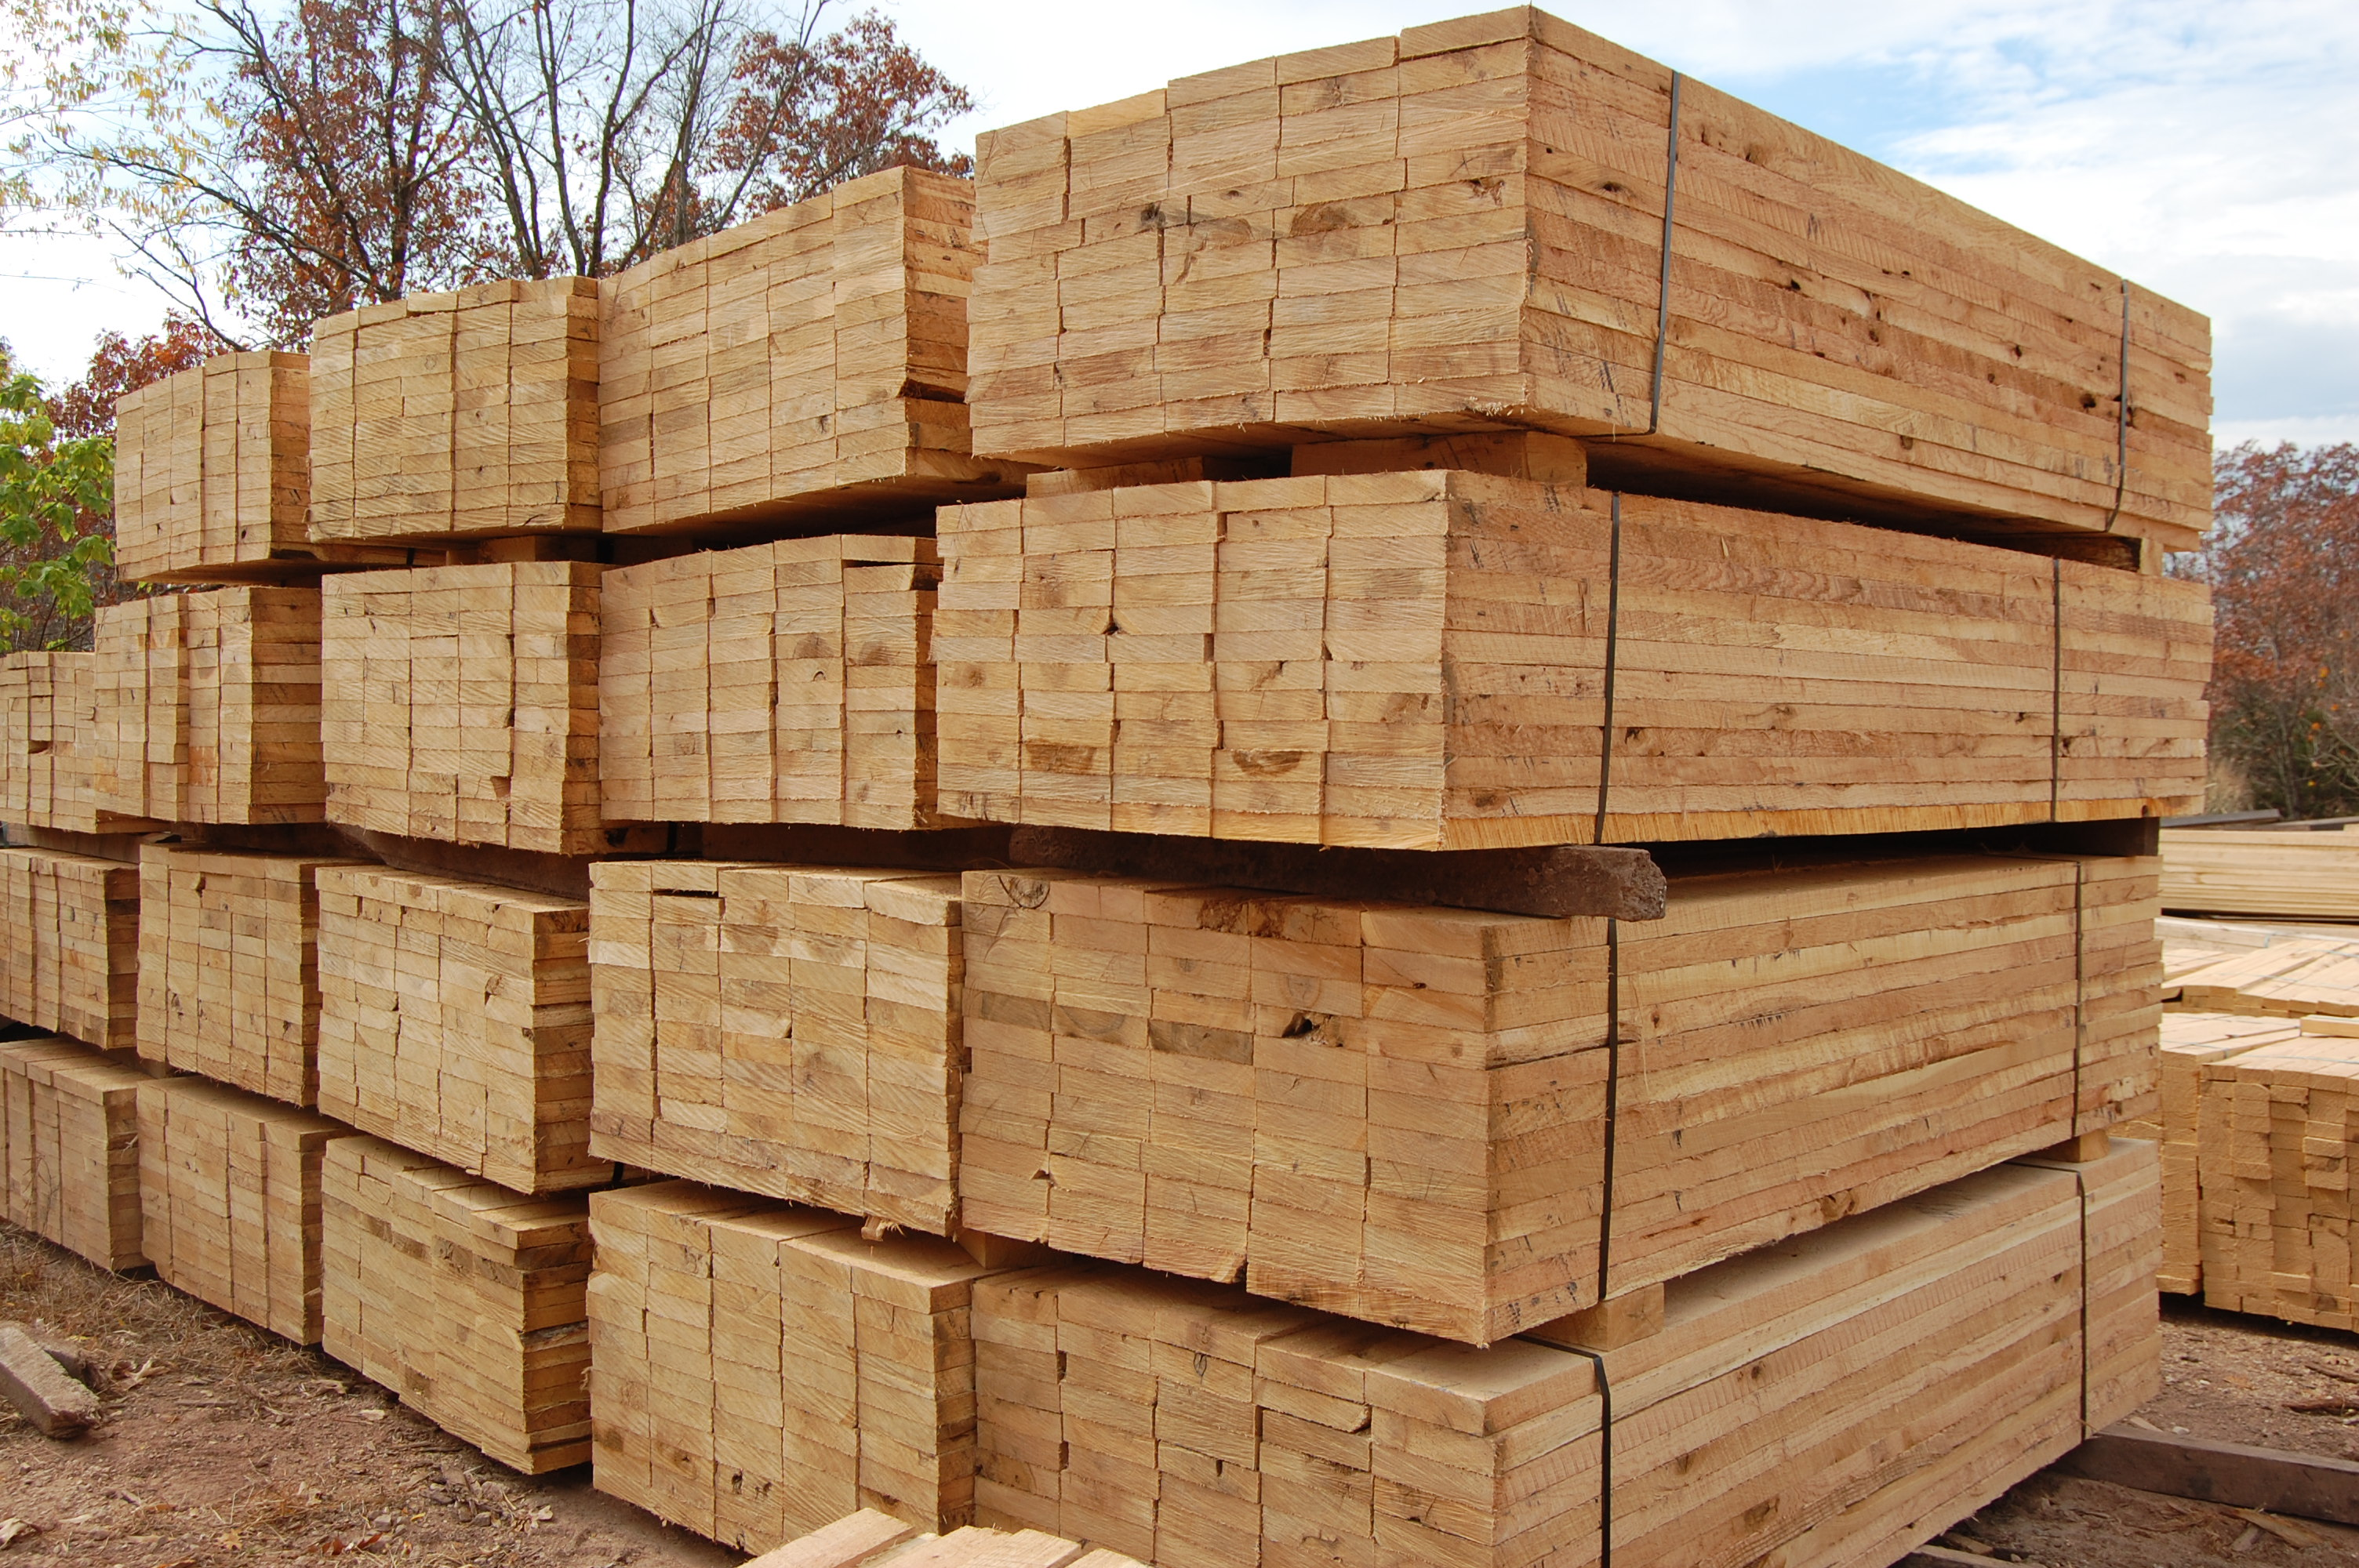 Commercial Lumber Supply | Quality Lumber for Industry